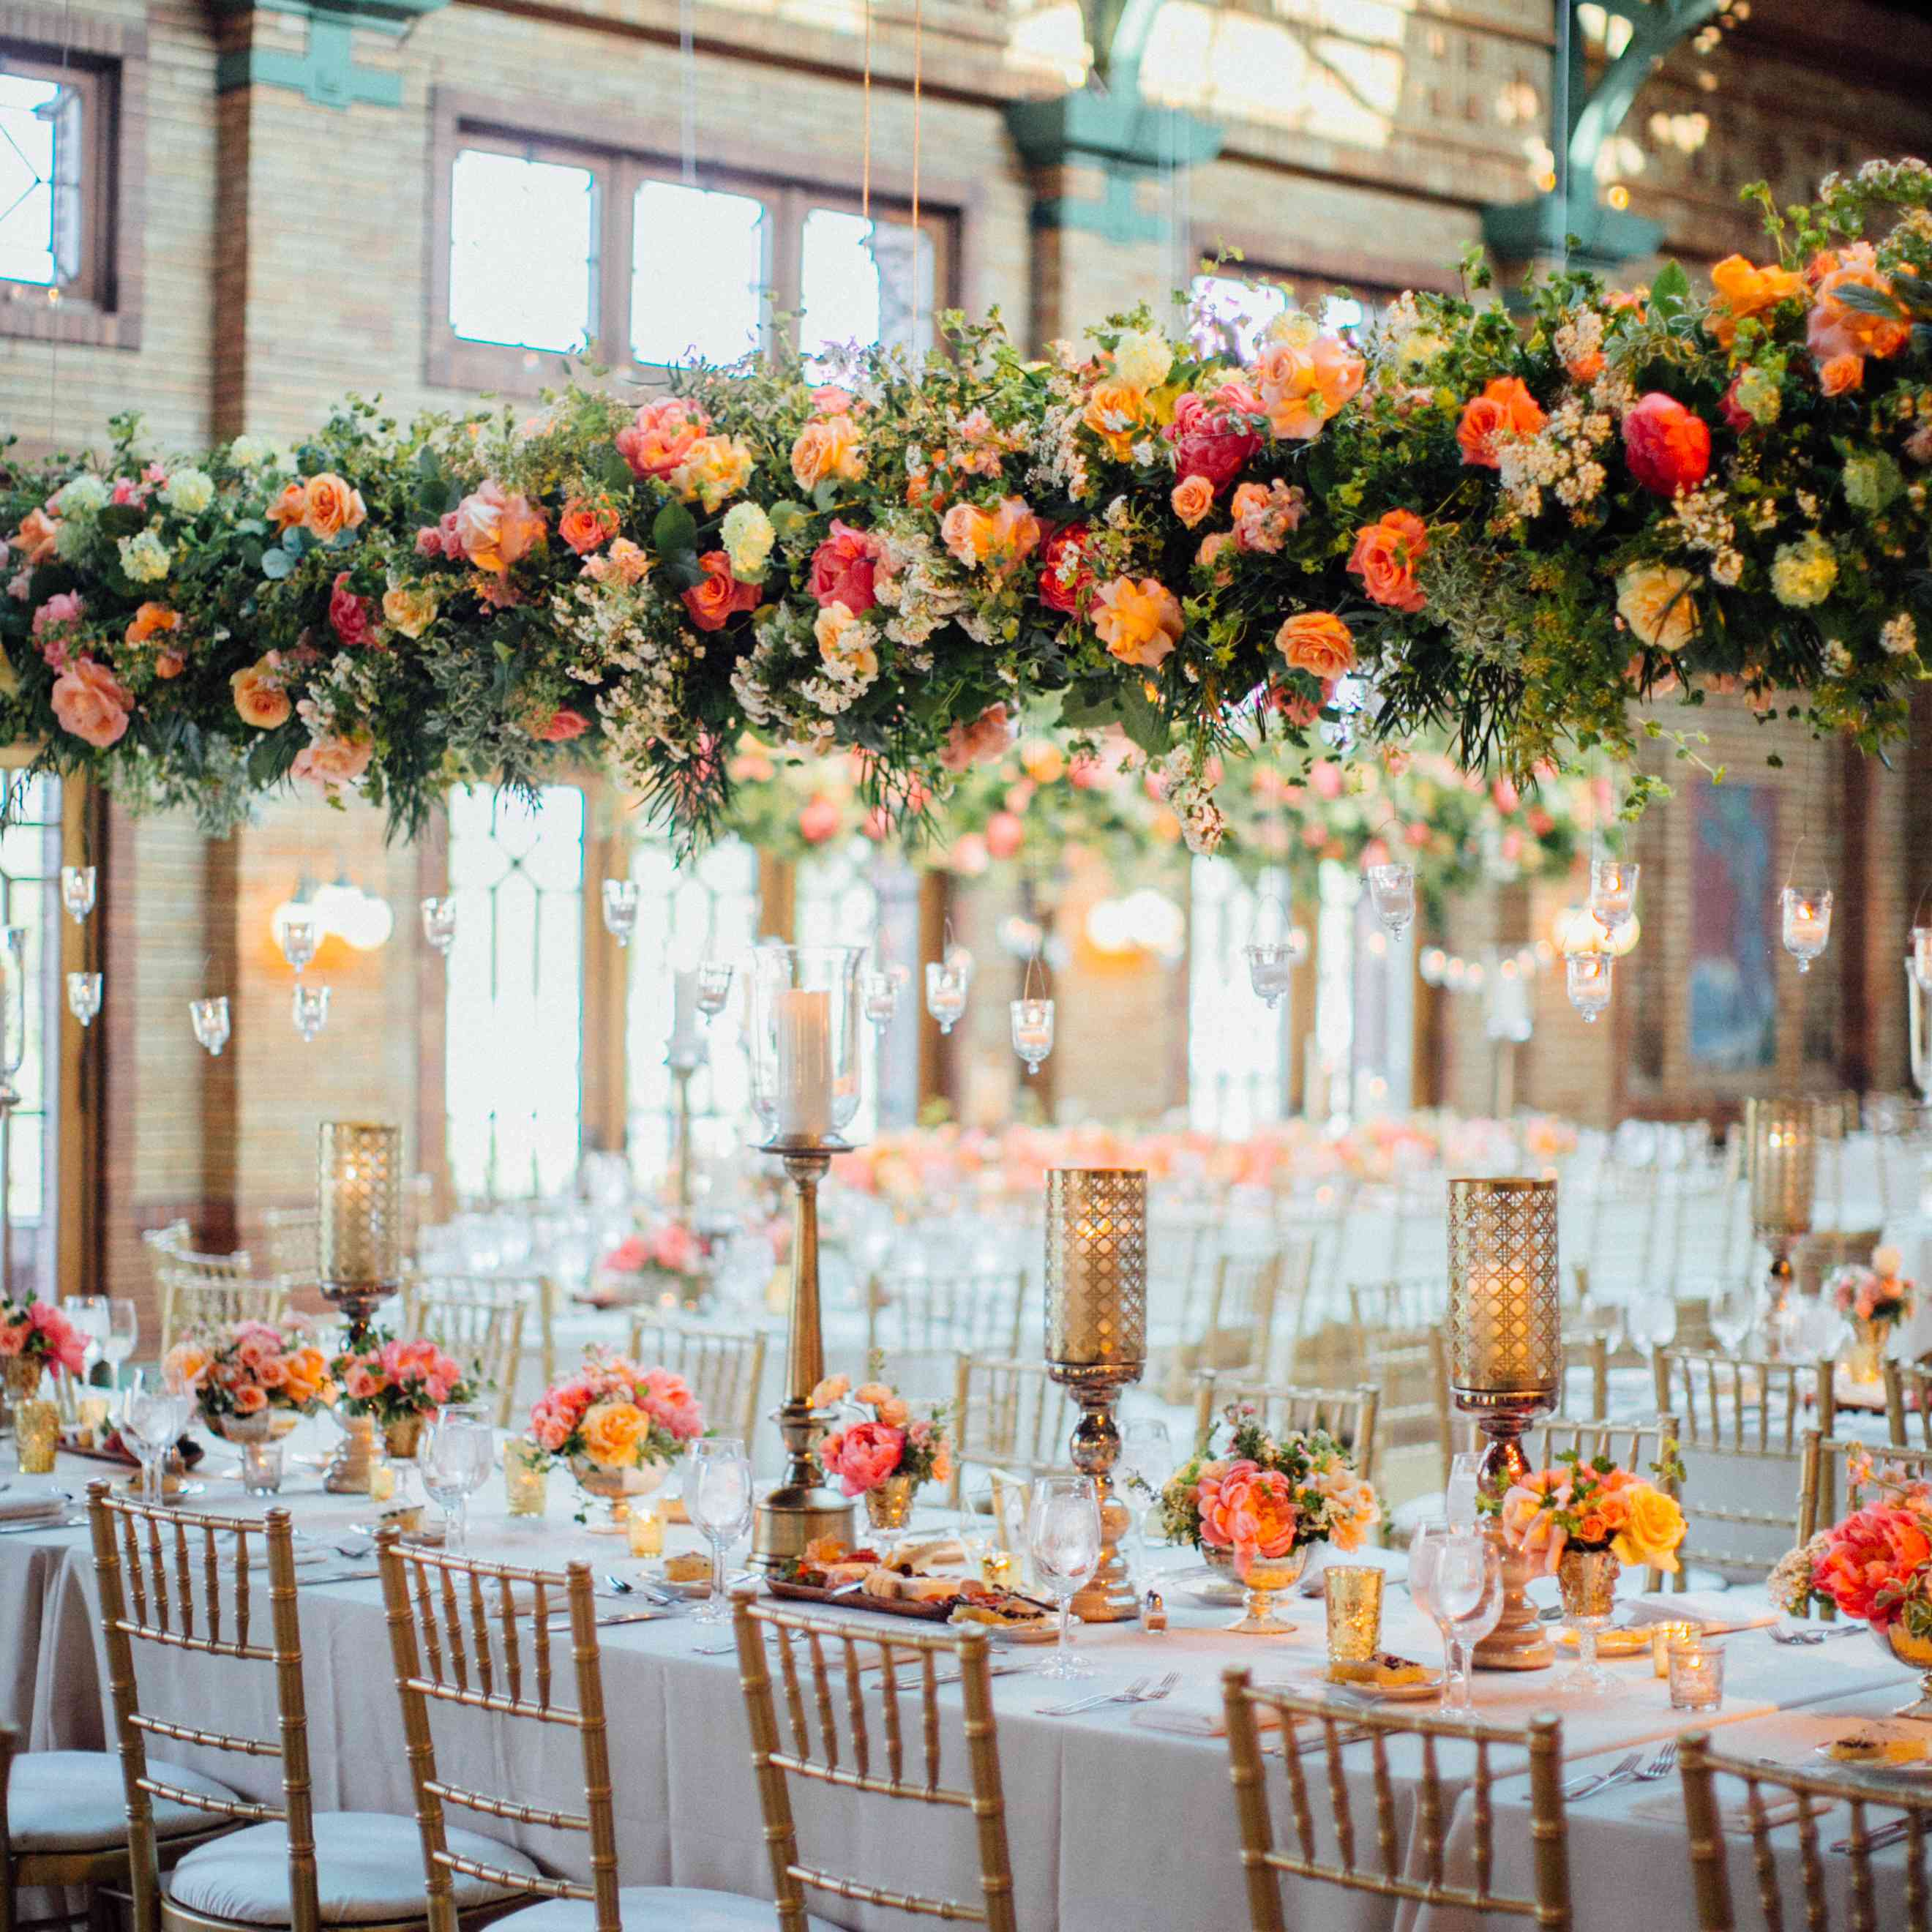 <p>Hanging Greenery and Flowers</p><br><br>